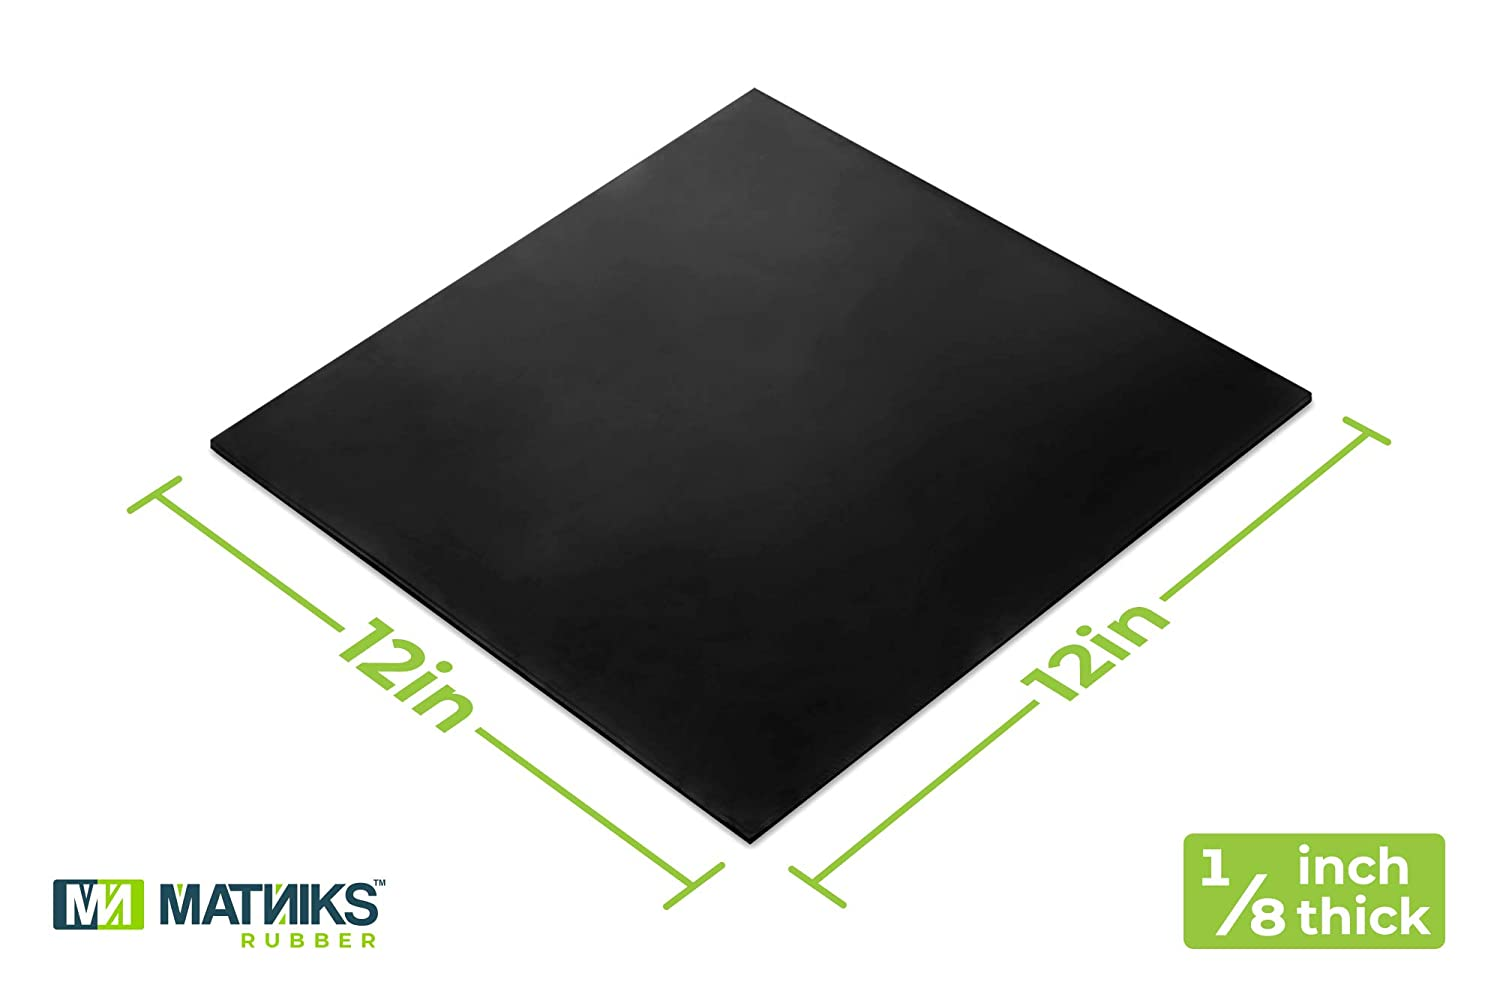 +//- 5/% Rubber Sheet for Plumbing High Grade 12x12-Inch by 1//16 Bumpers Neoprene Off-White Leveling Hardness A60 Supports Heavy Duty Abrasion Protection Gaskets DIY Material Sealing